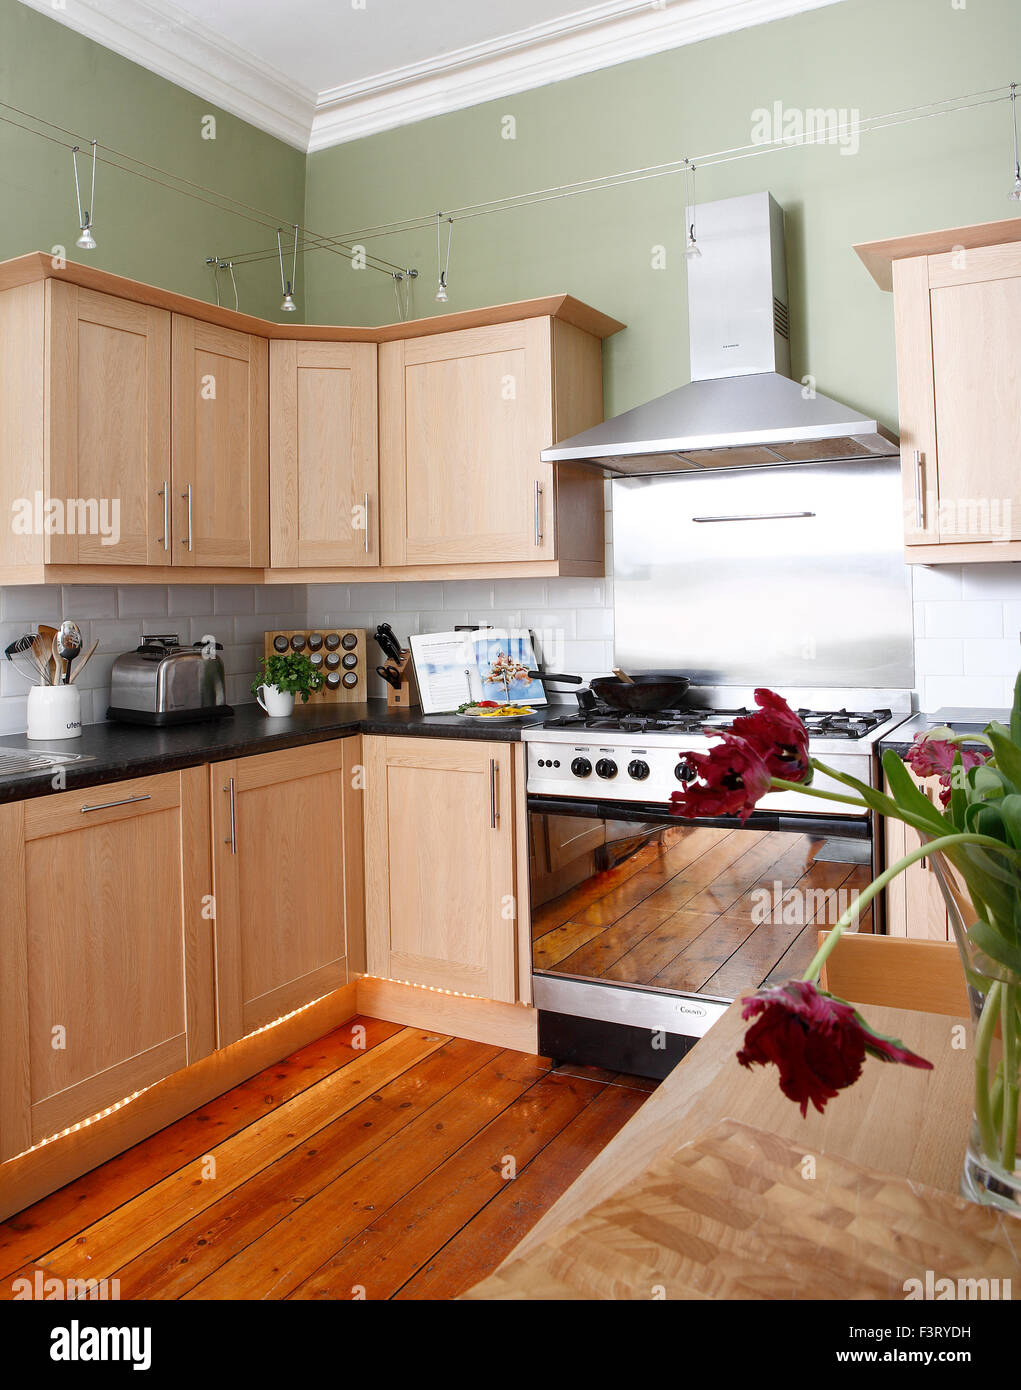 olive green kitchen with wooden units Stock Photo: 88422253 ...